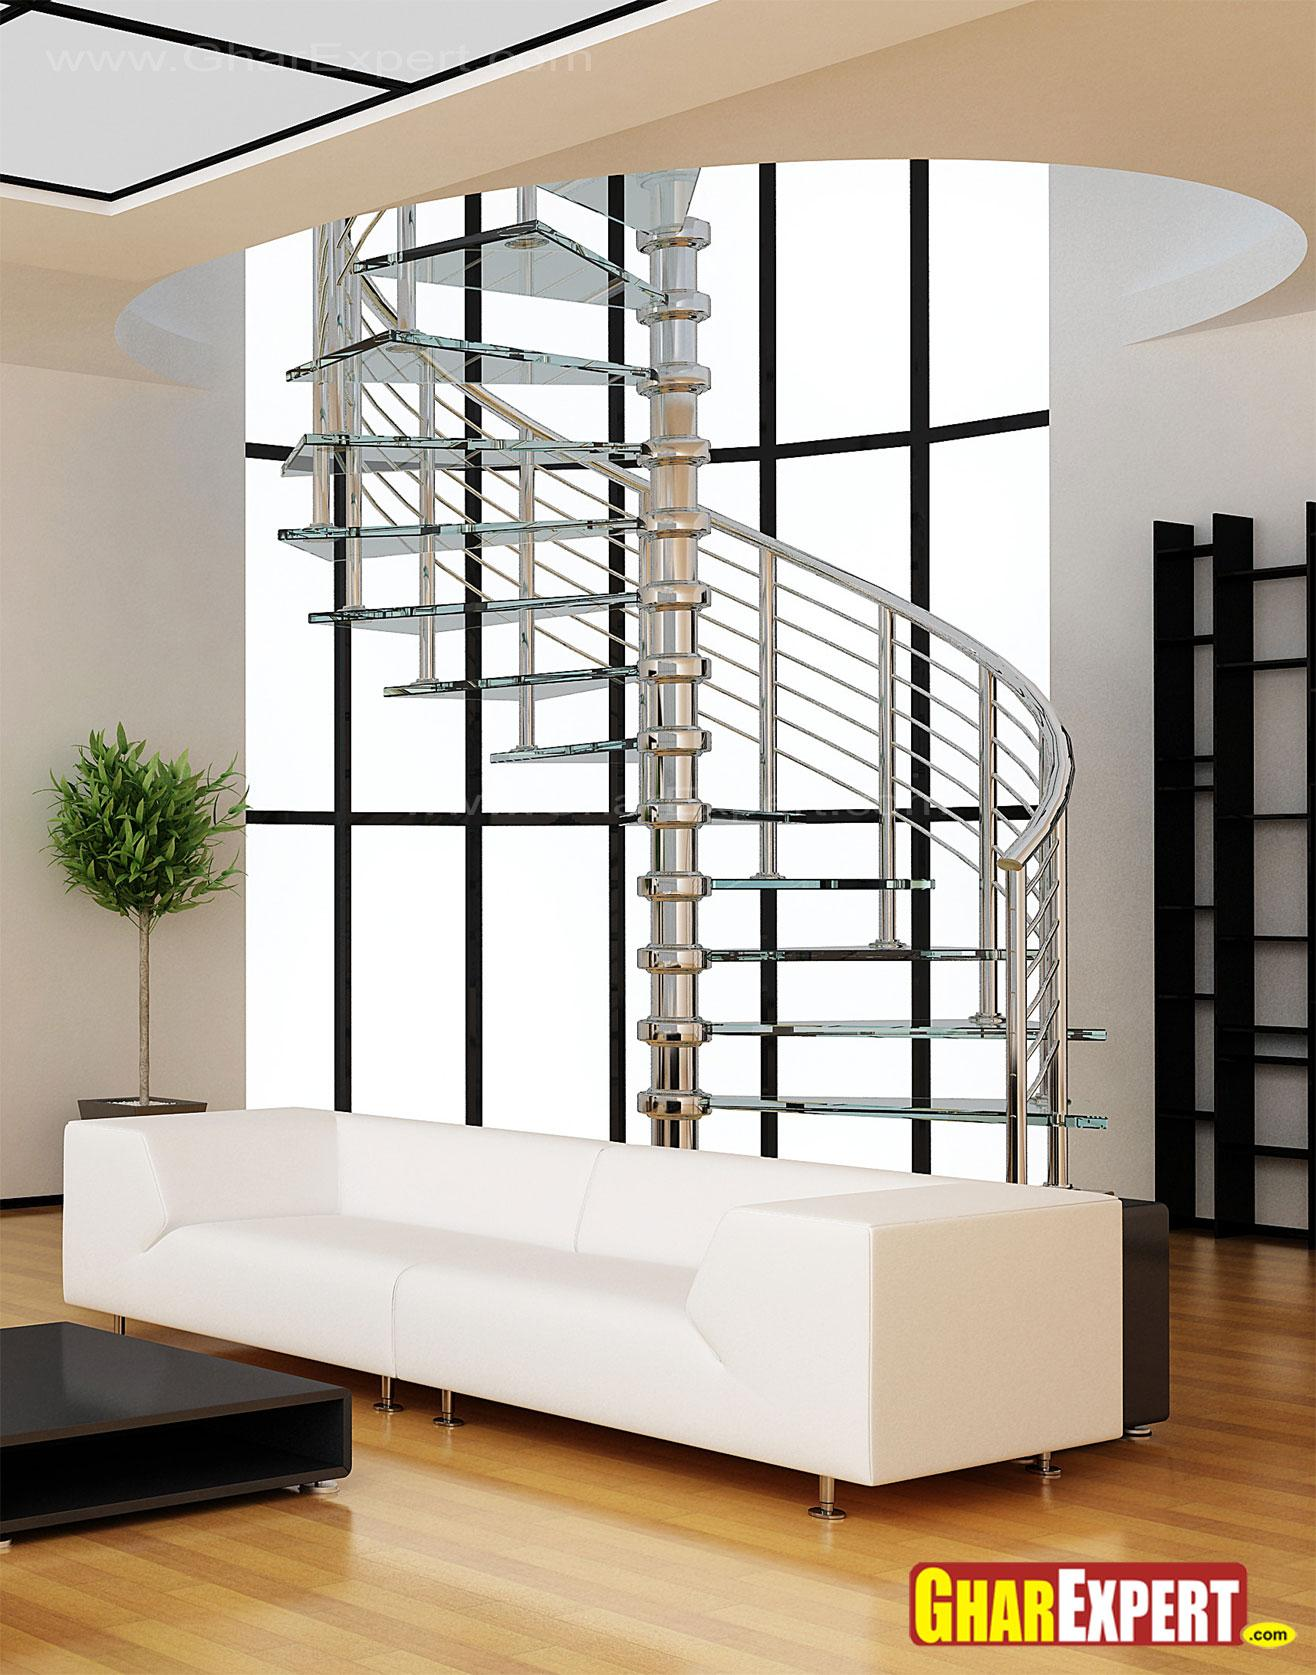 Spiral staircase with steel ra....